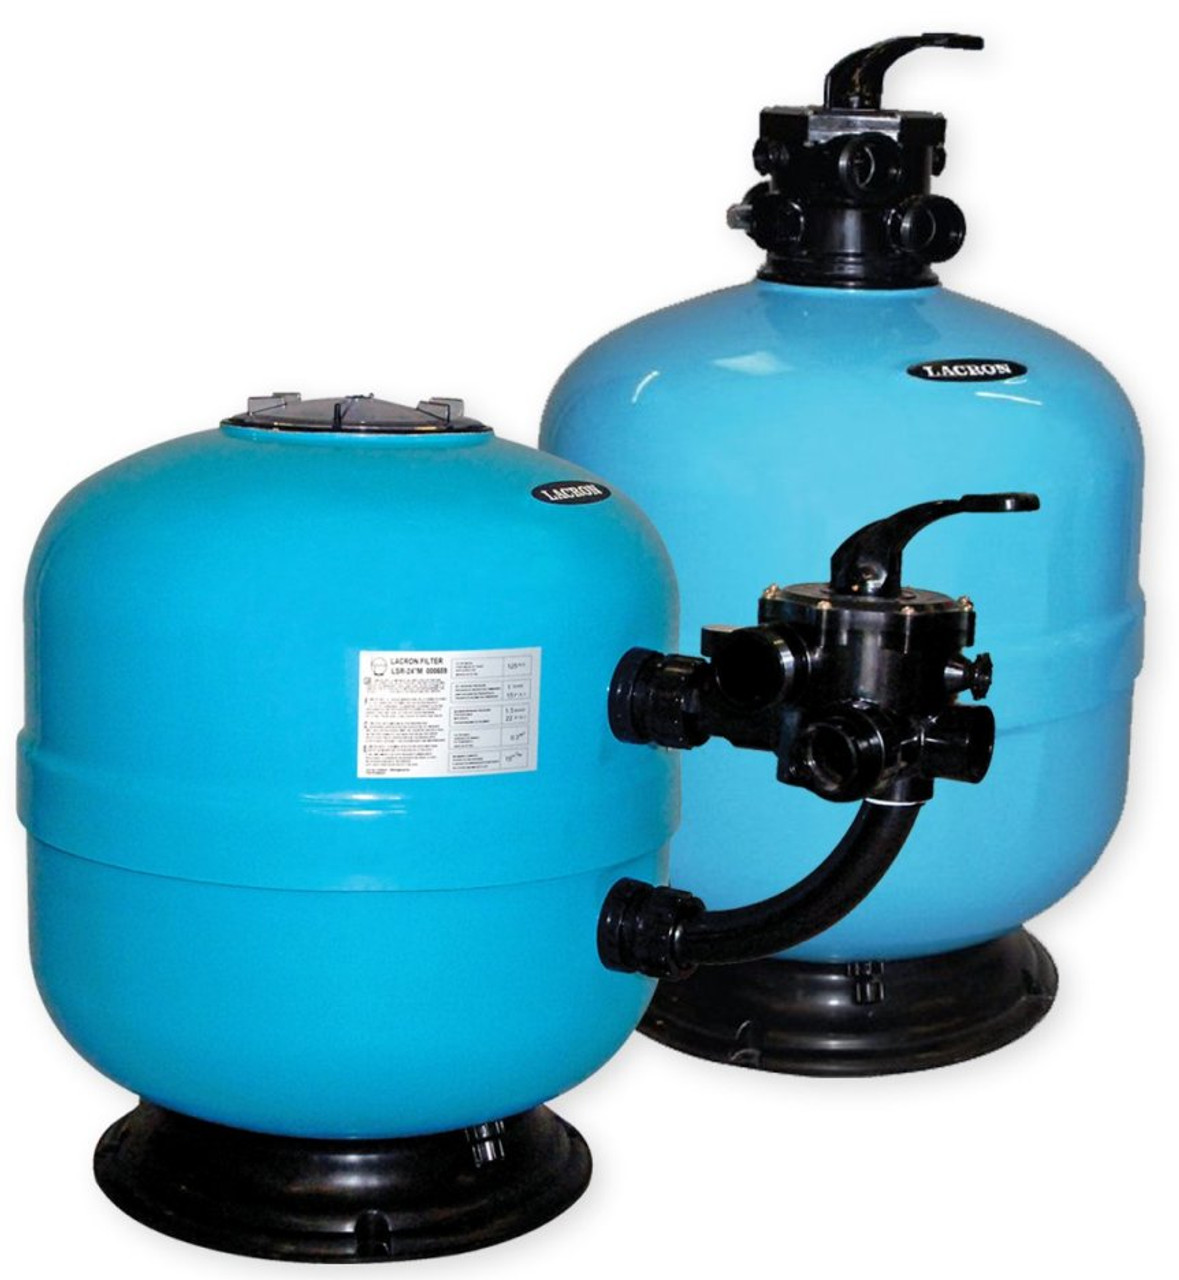 Lacron swimming pool sand filter top and side mount